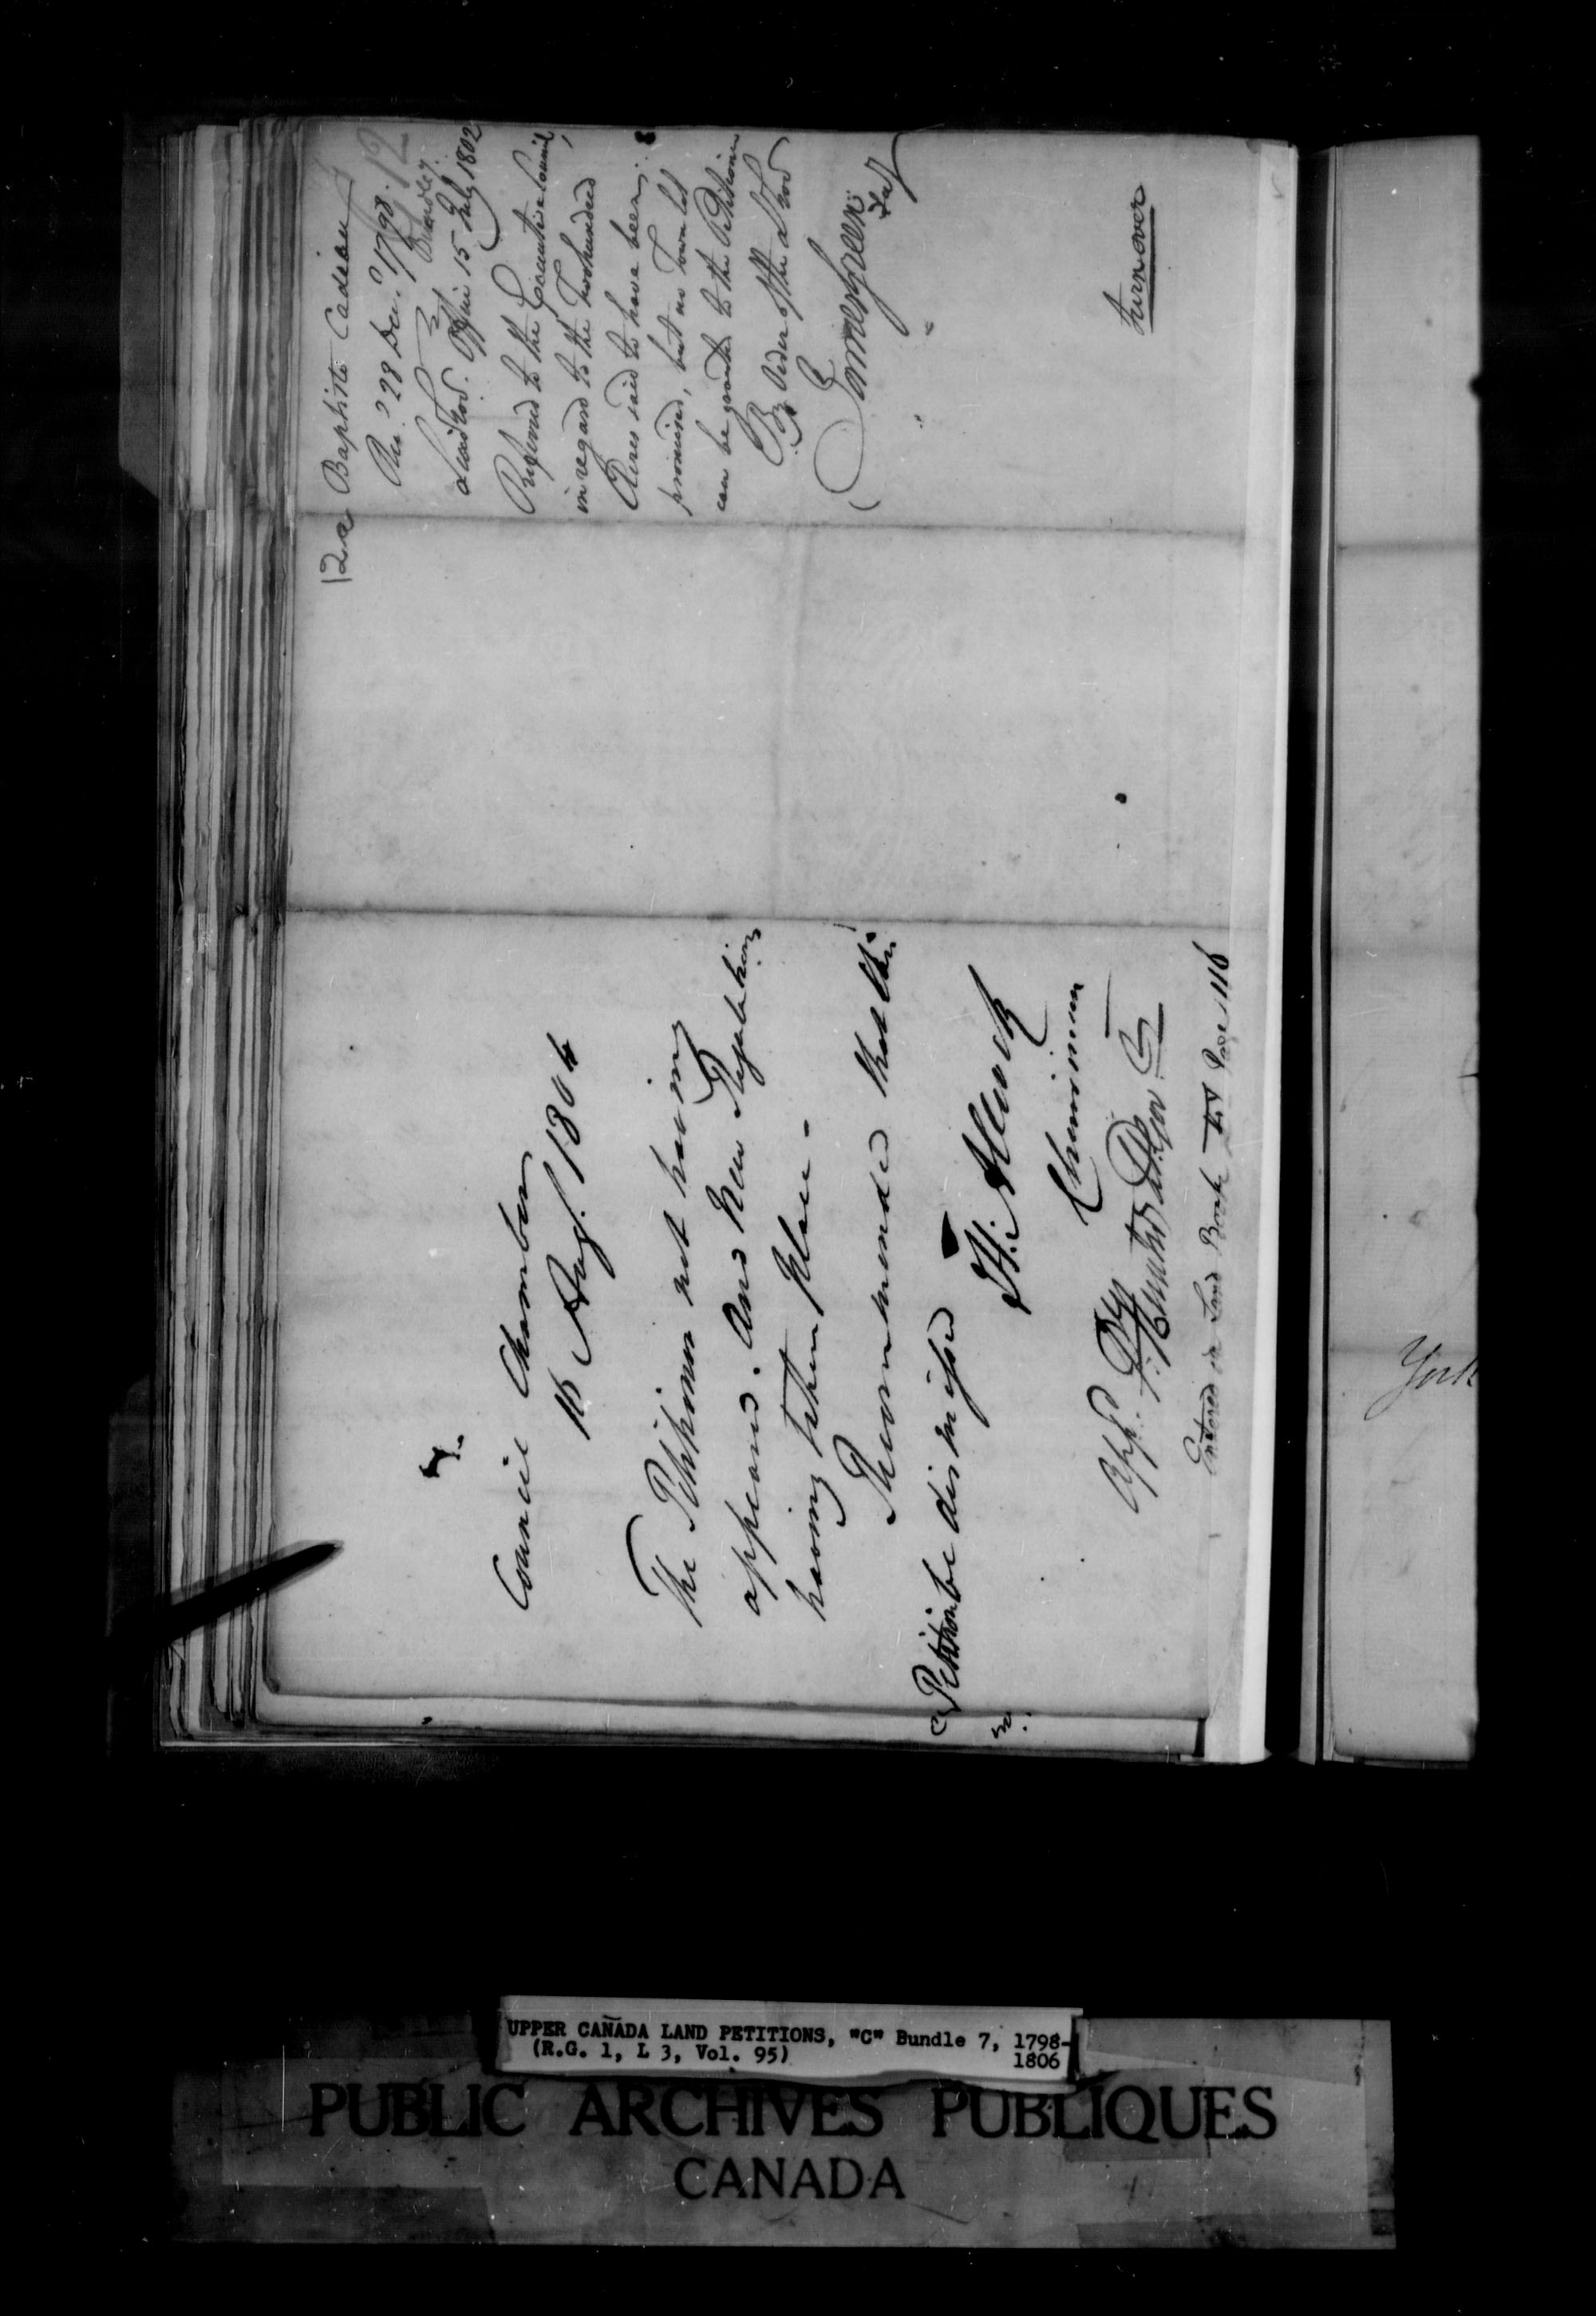 Title: Upper Canada Land Petitions (1763-1865) - Mikan Number: 205131 - Microform: c-1649